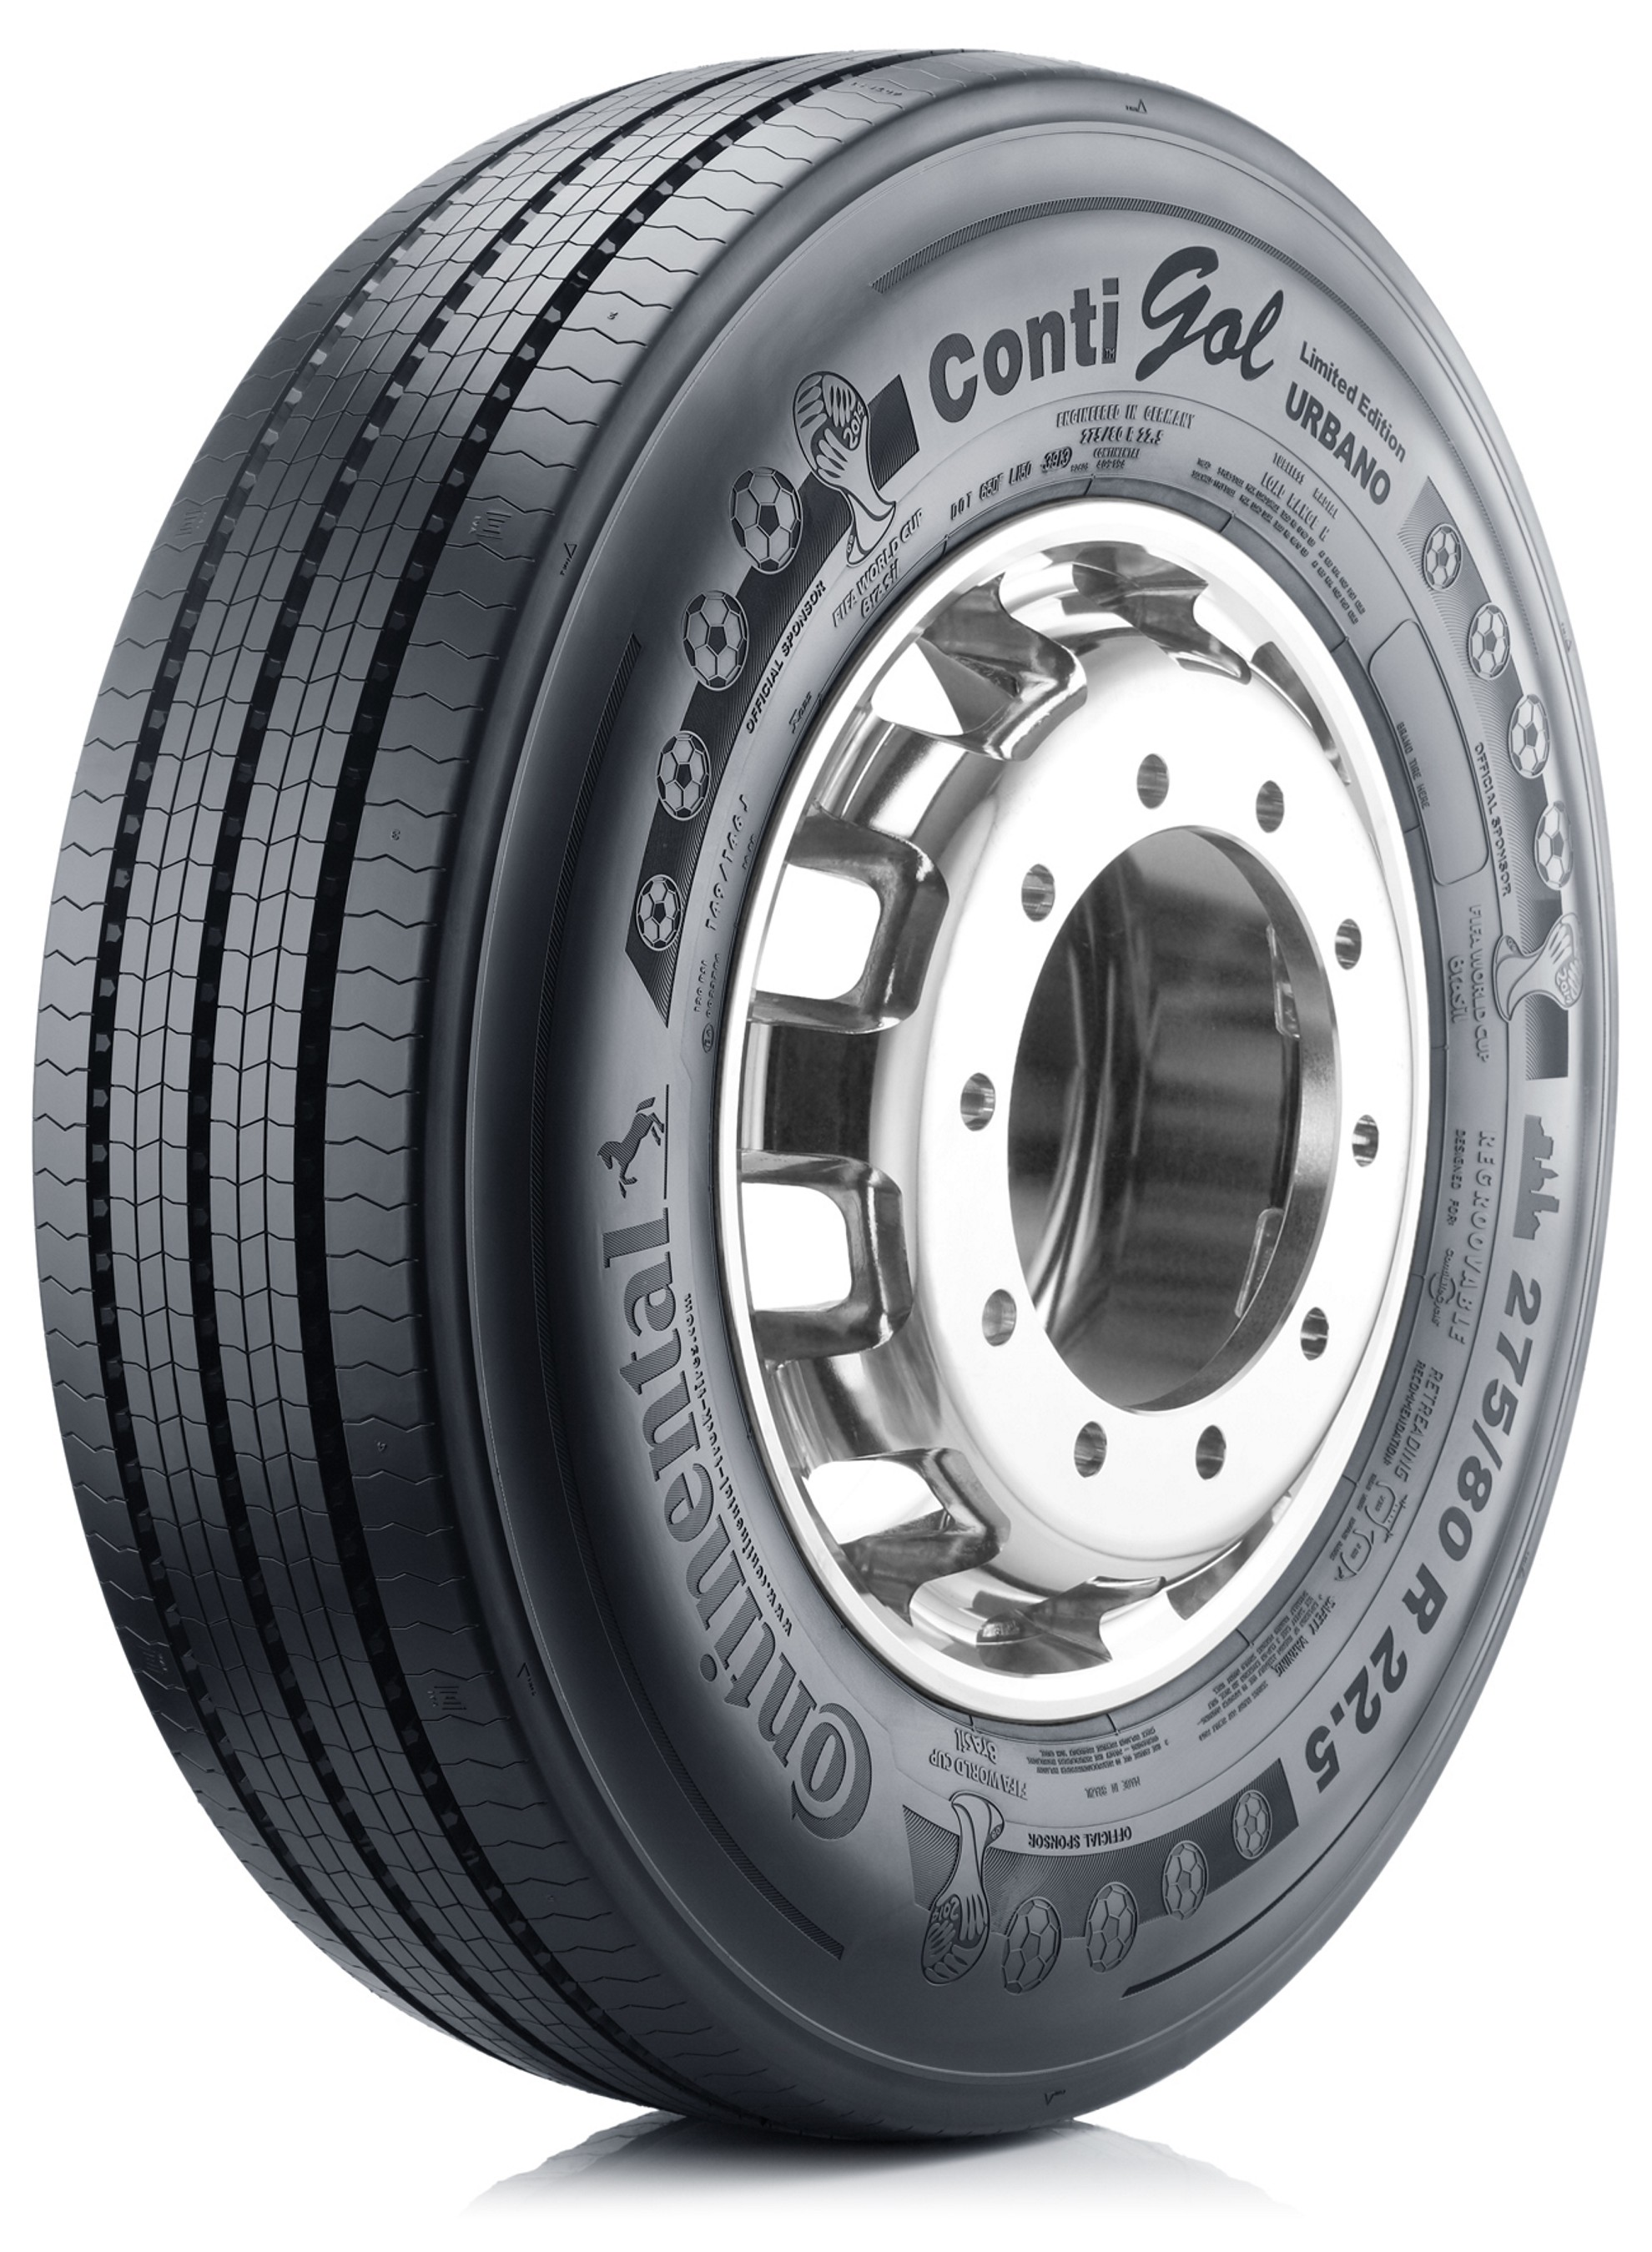 World_Cup_2014_Continental_Tyres